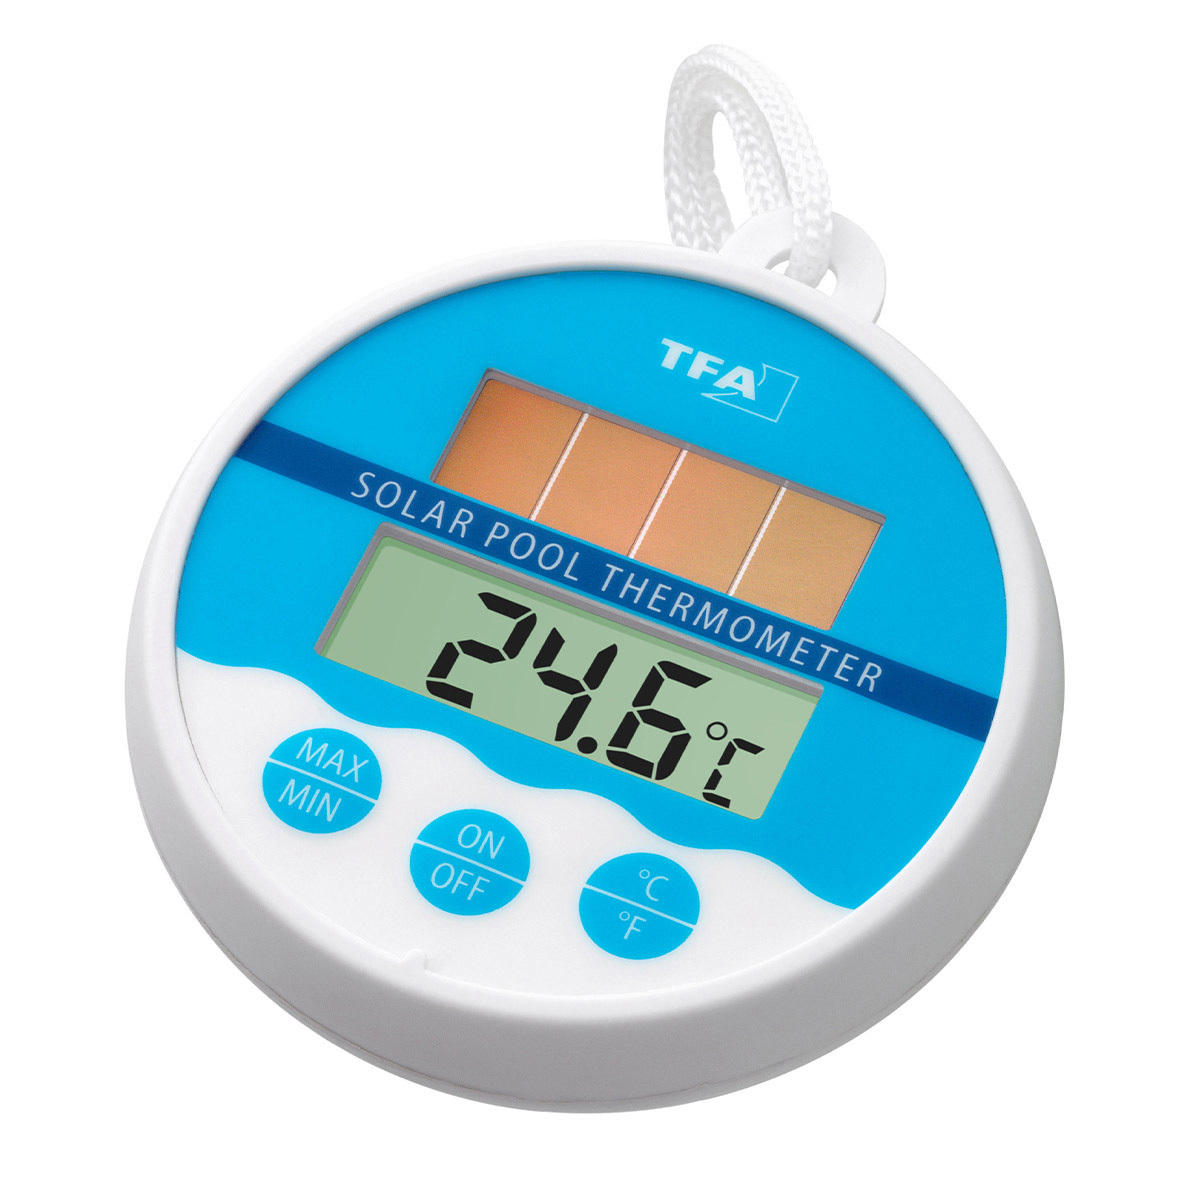 30-1041-digitales-solar-poolthermometer-ansicht-1200x1200px.jpg